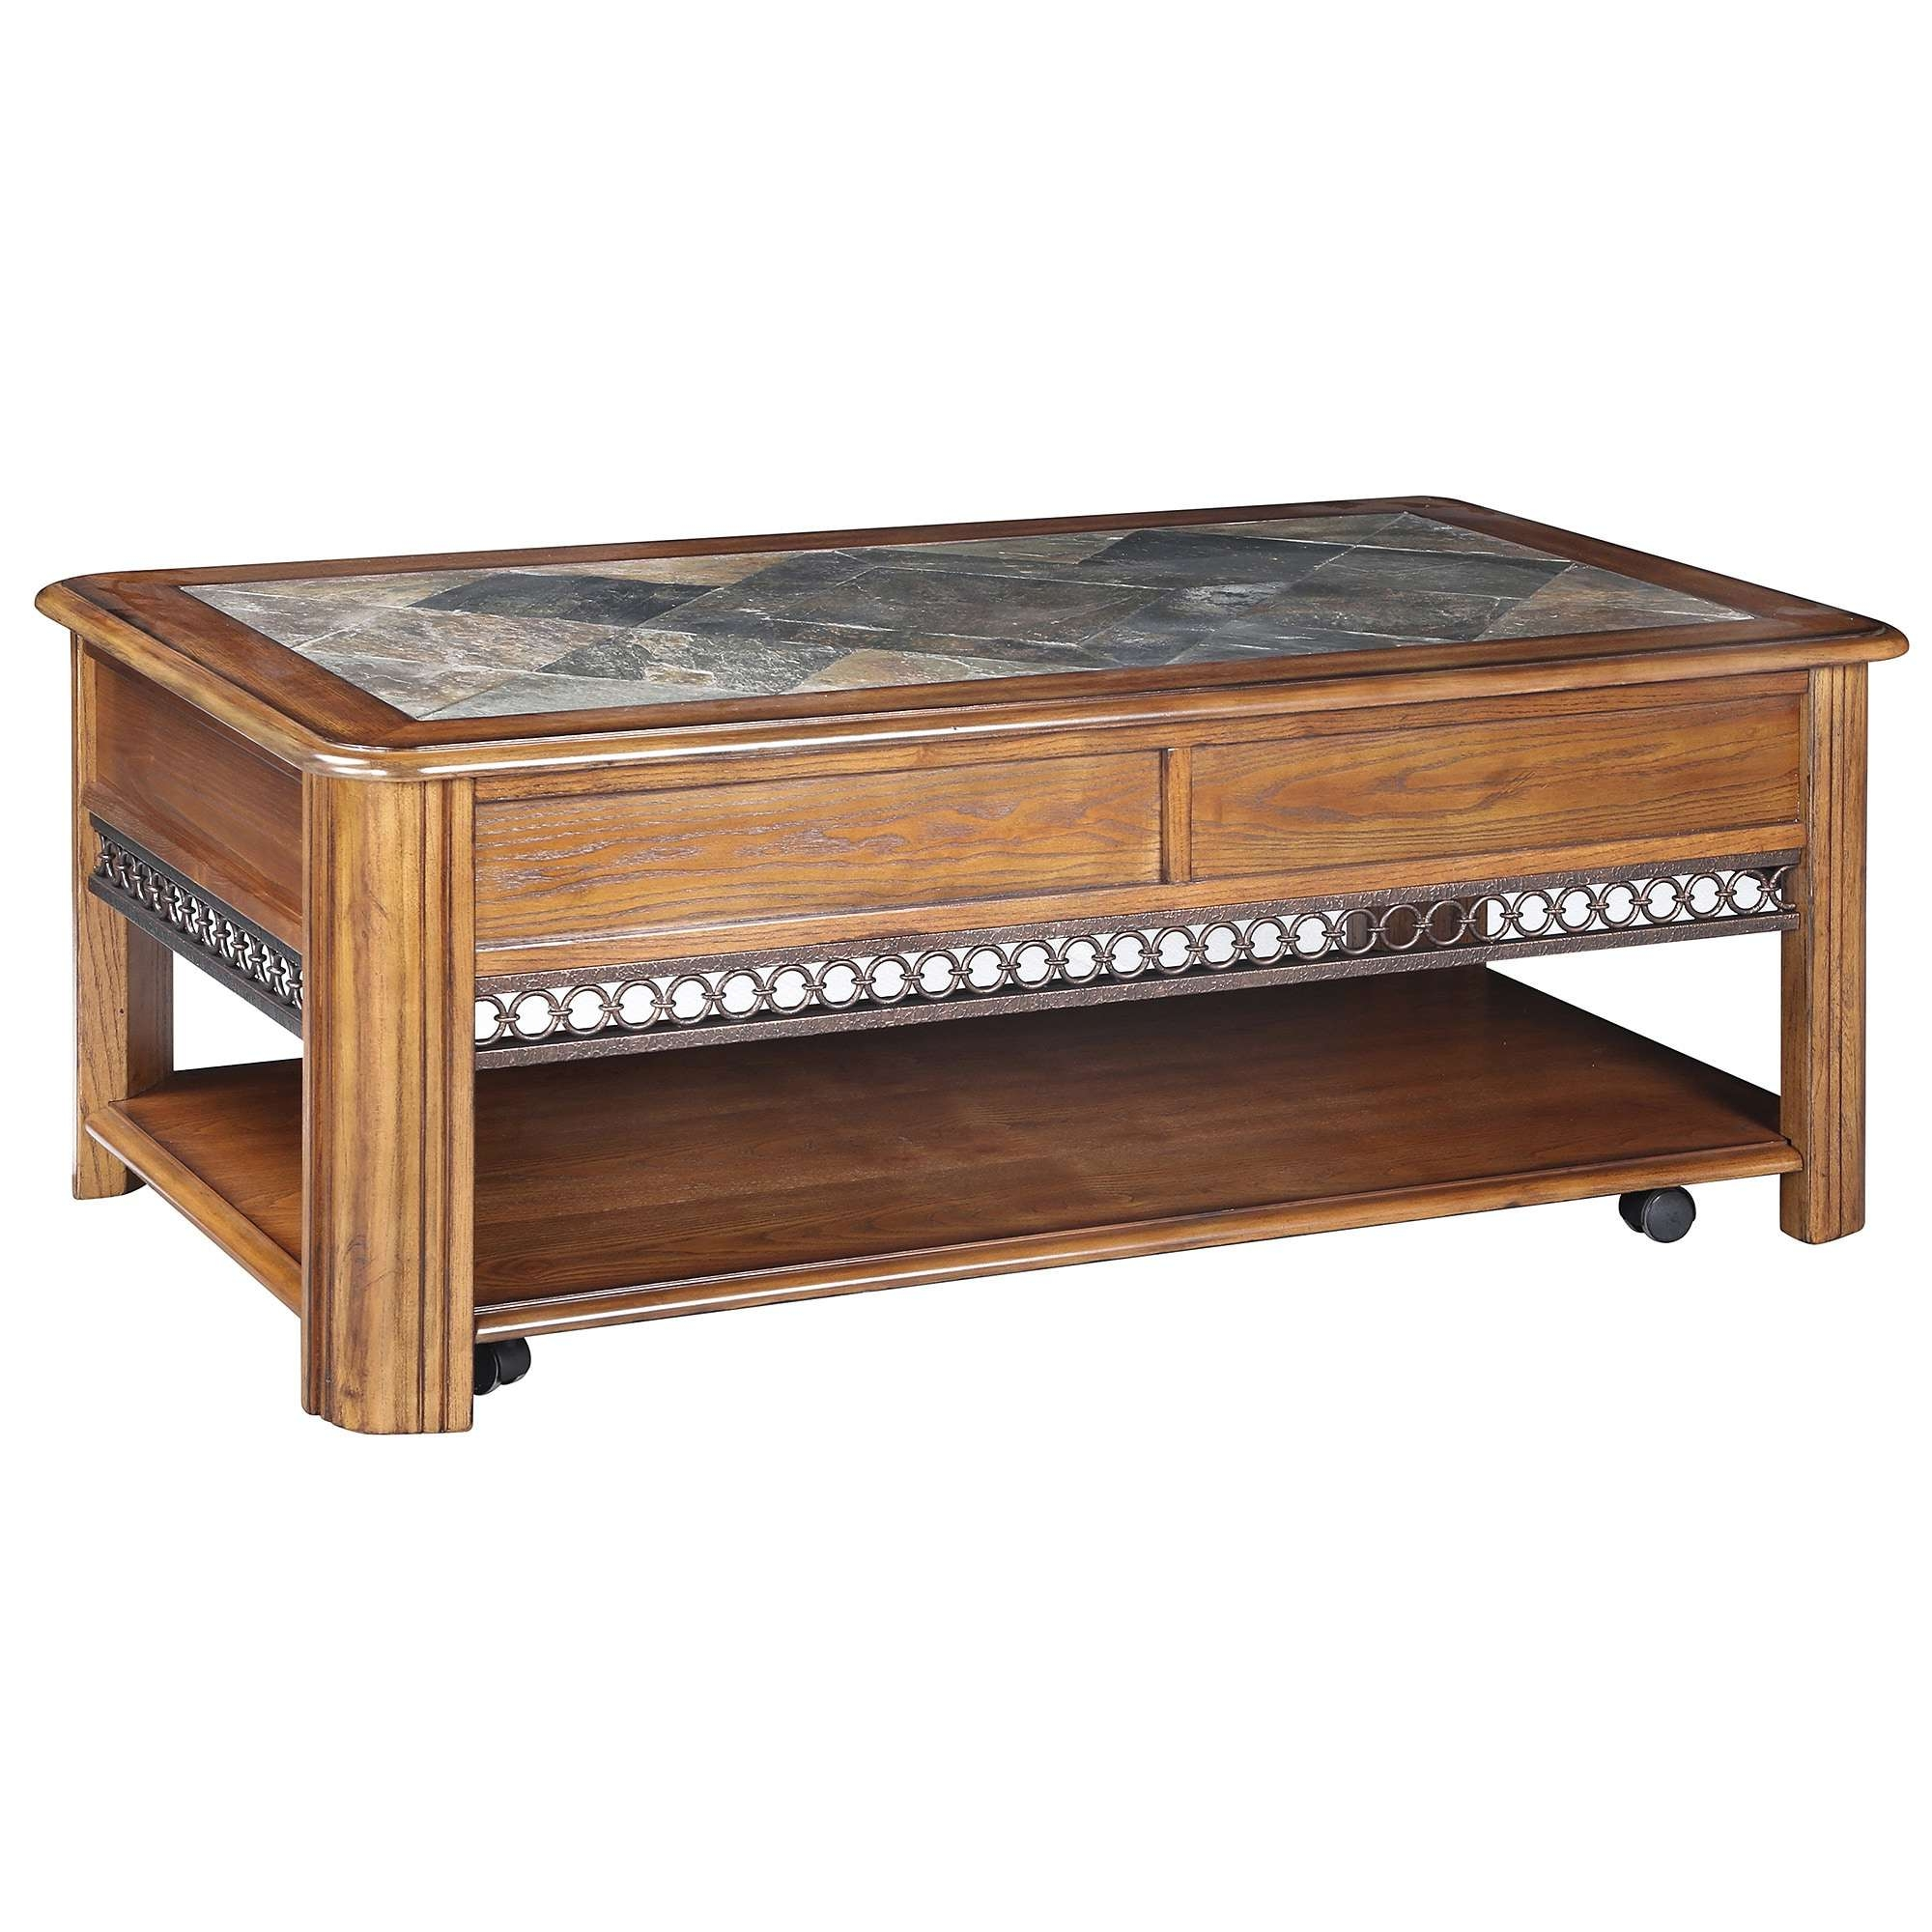 Well Liked Madison Coffee Tables Intended For Madison Rustic Warm Nutmeg Lift Top Coffee Table With Casters (View 18 of 20)